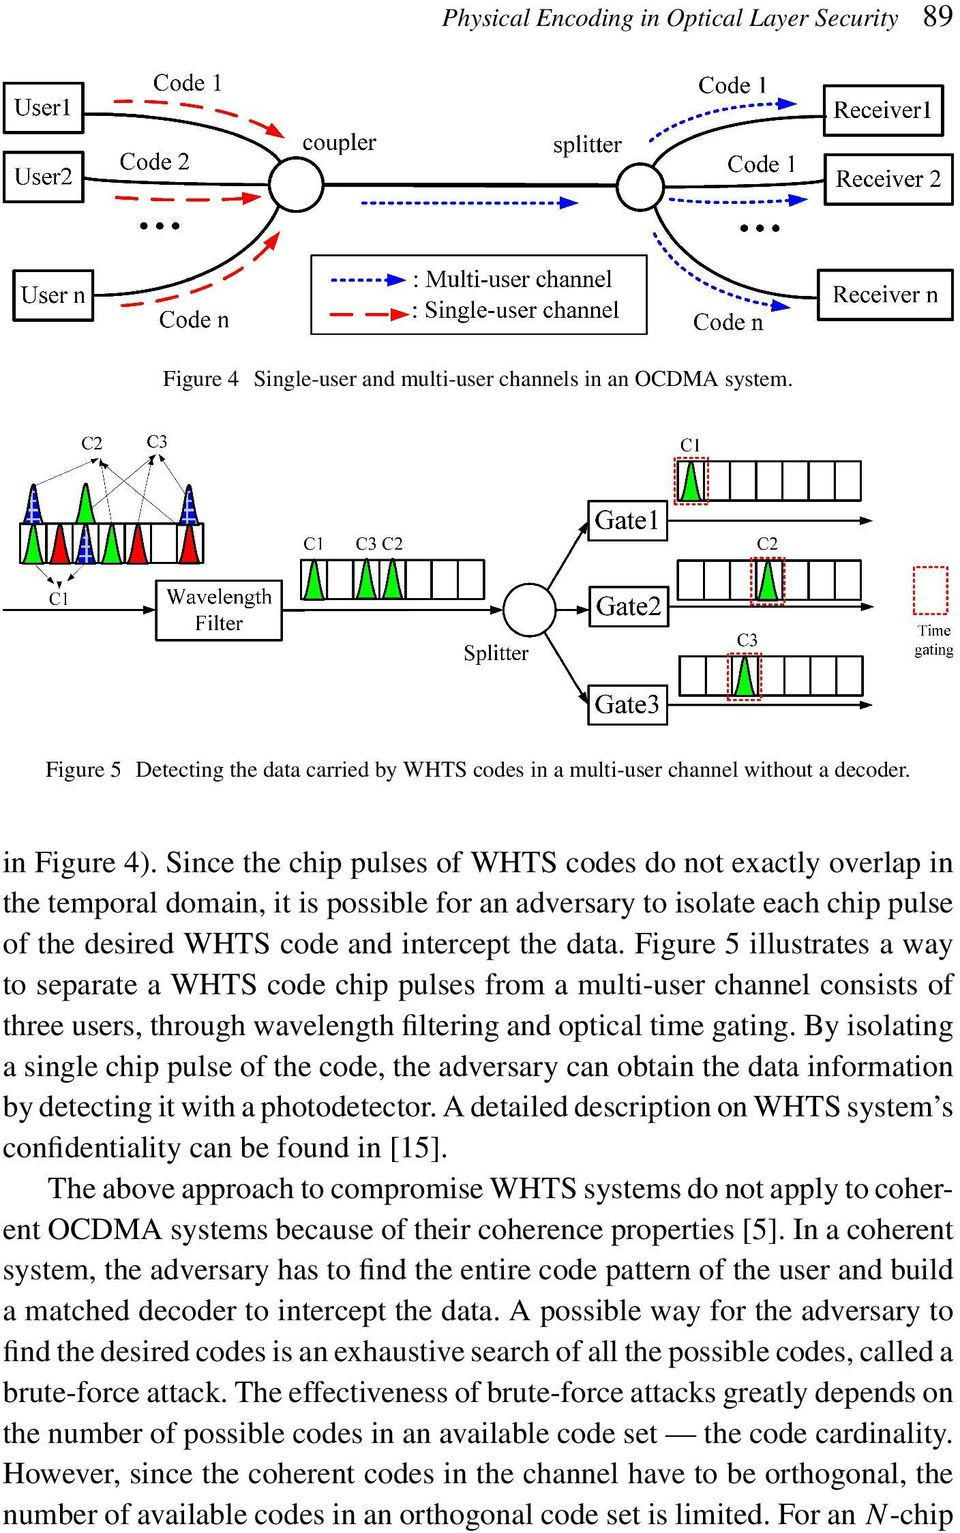 Since the chip pulses of WHTS codes do not exactly overlap in the temporal domain, it is possible for an adversary to isolate each chip pulse of the desired WHTS code and intercept the data.